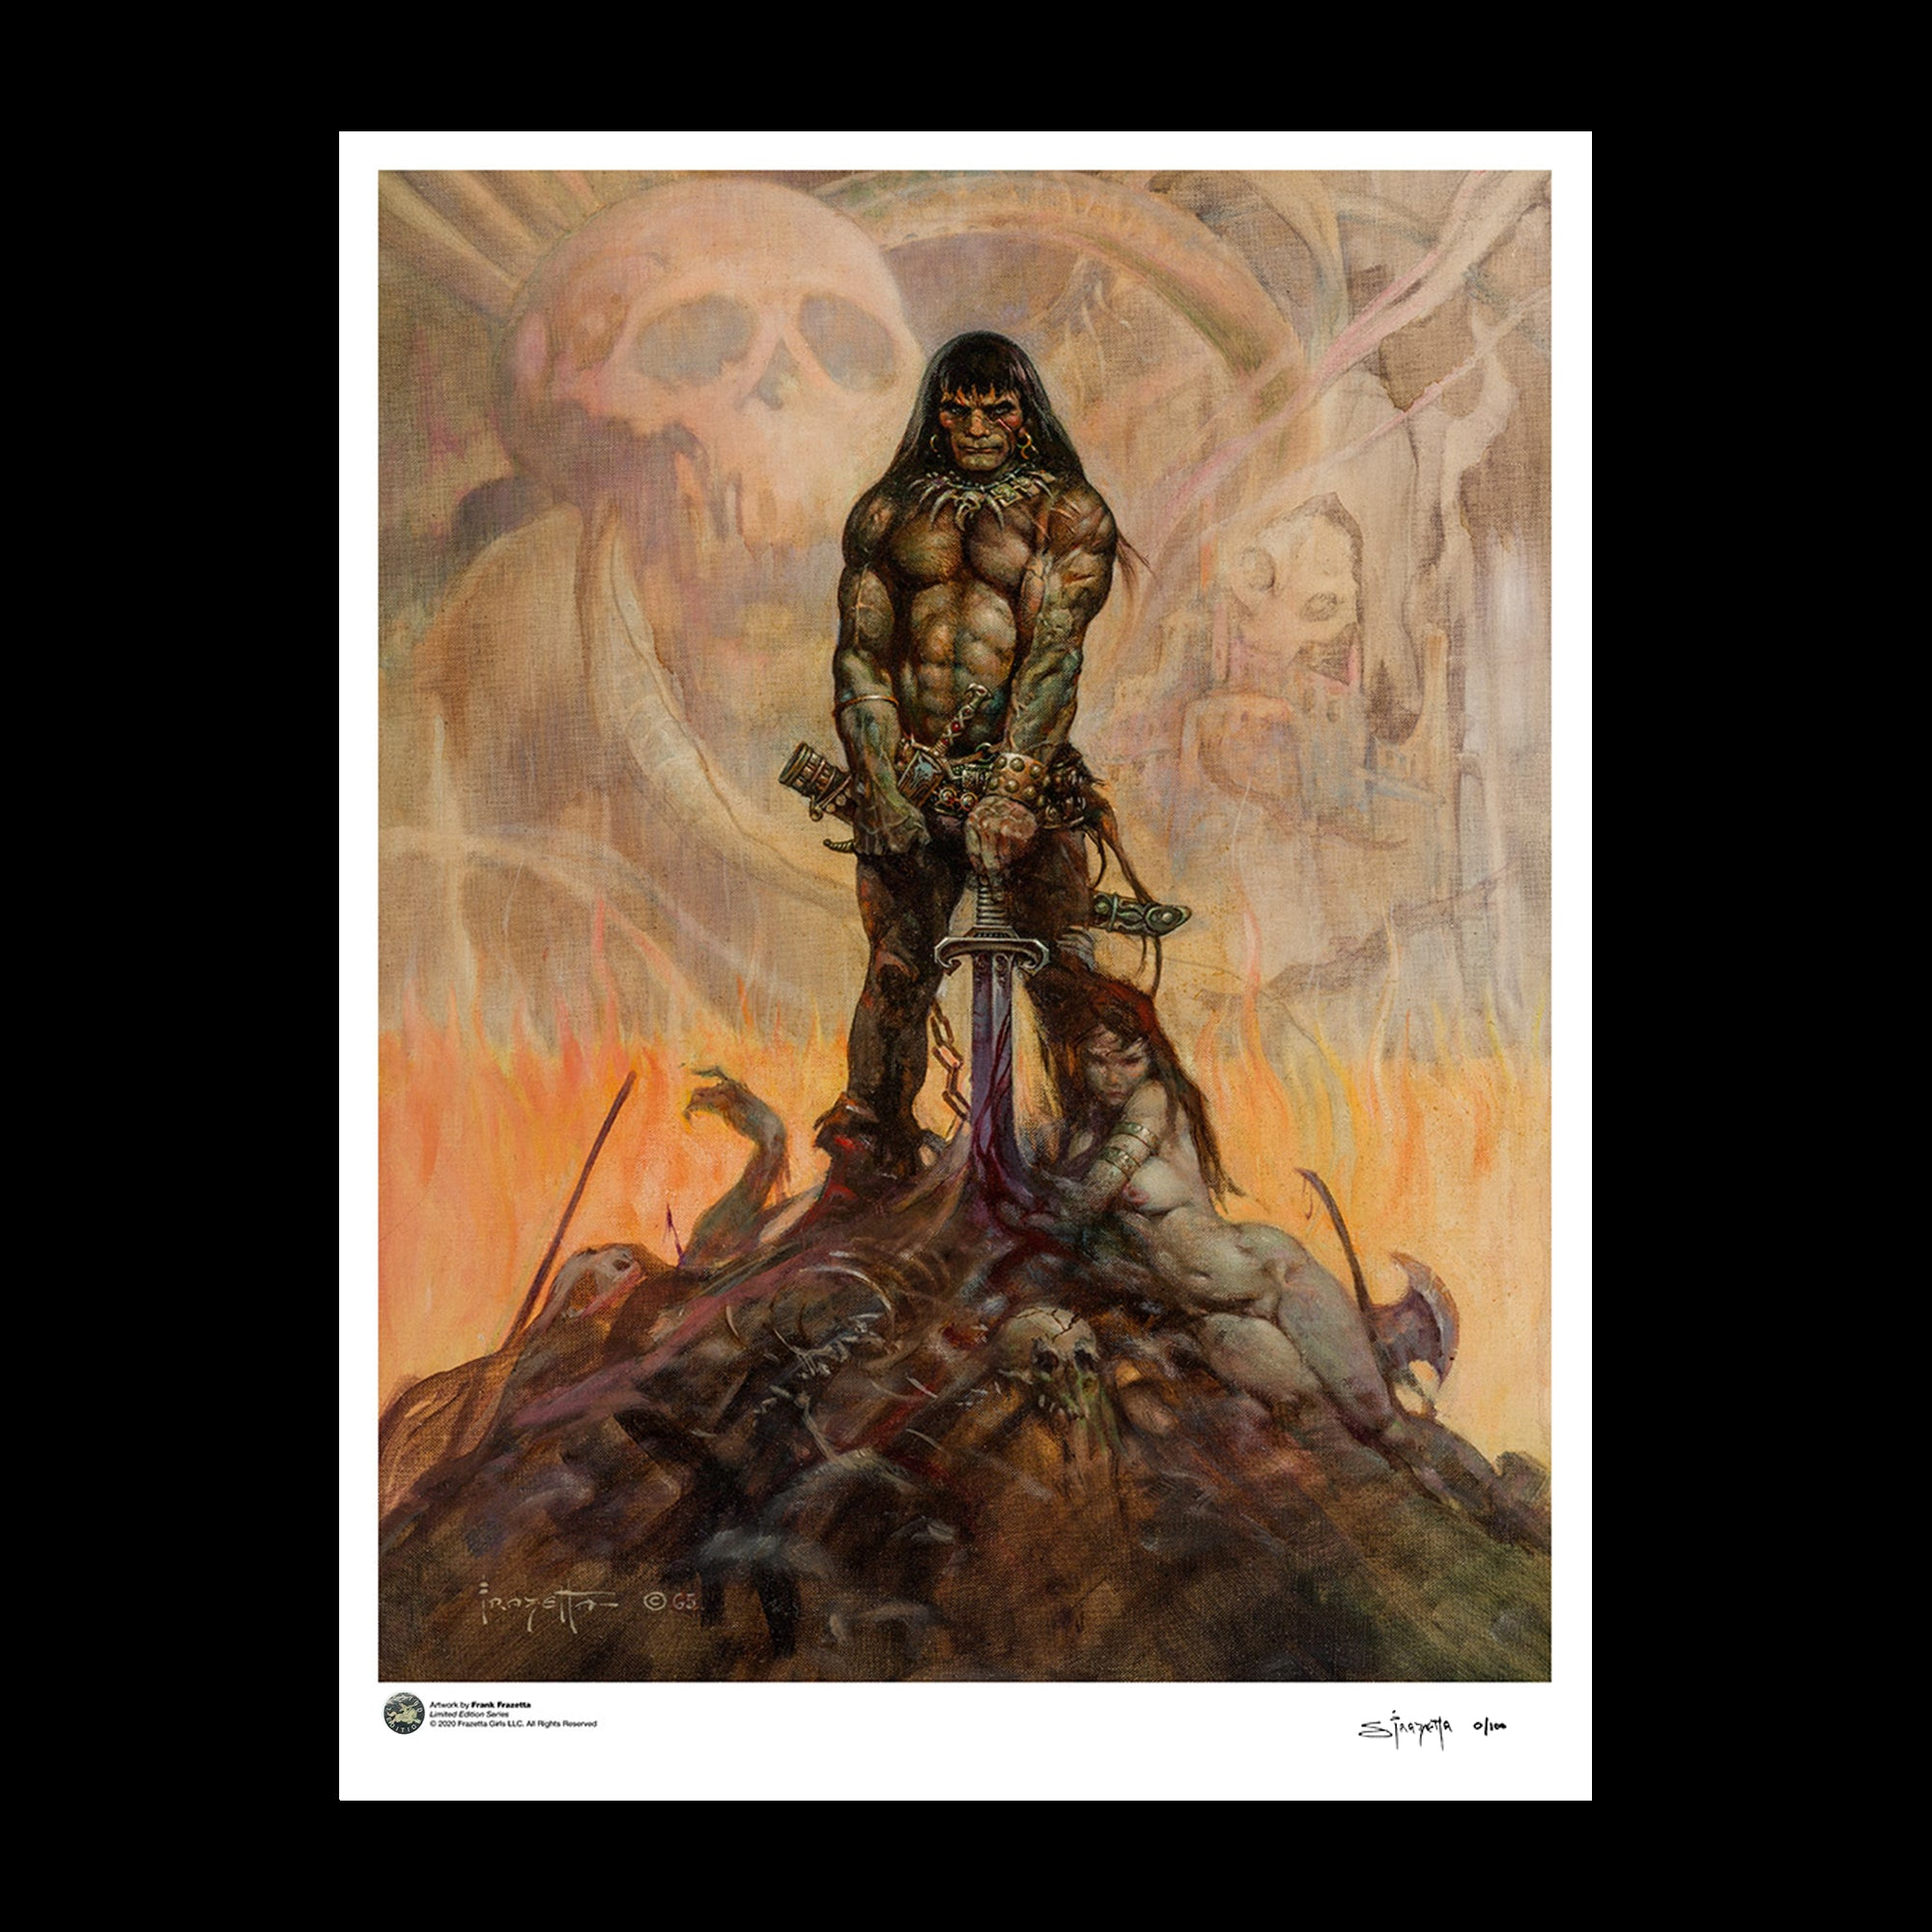 Frank Frazetta 'Conan The Barbarian' 24x32 Limited Edition Giclée